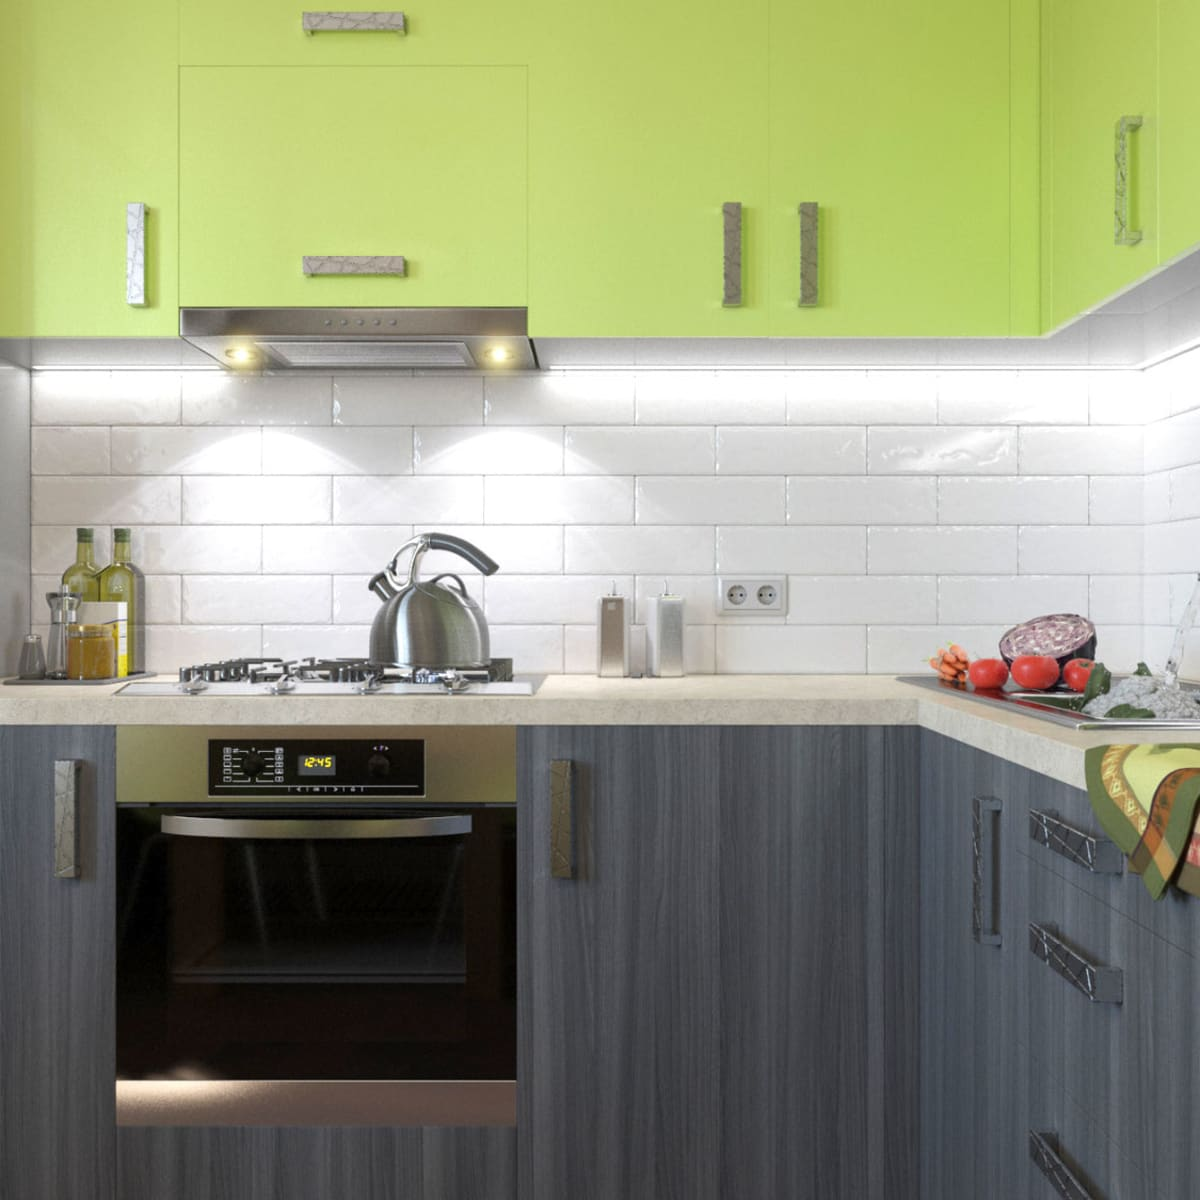 Best Rated Dishwashers 2020 The hottest kitchen trends for 2020   Reviewed Refrigerators